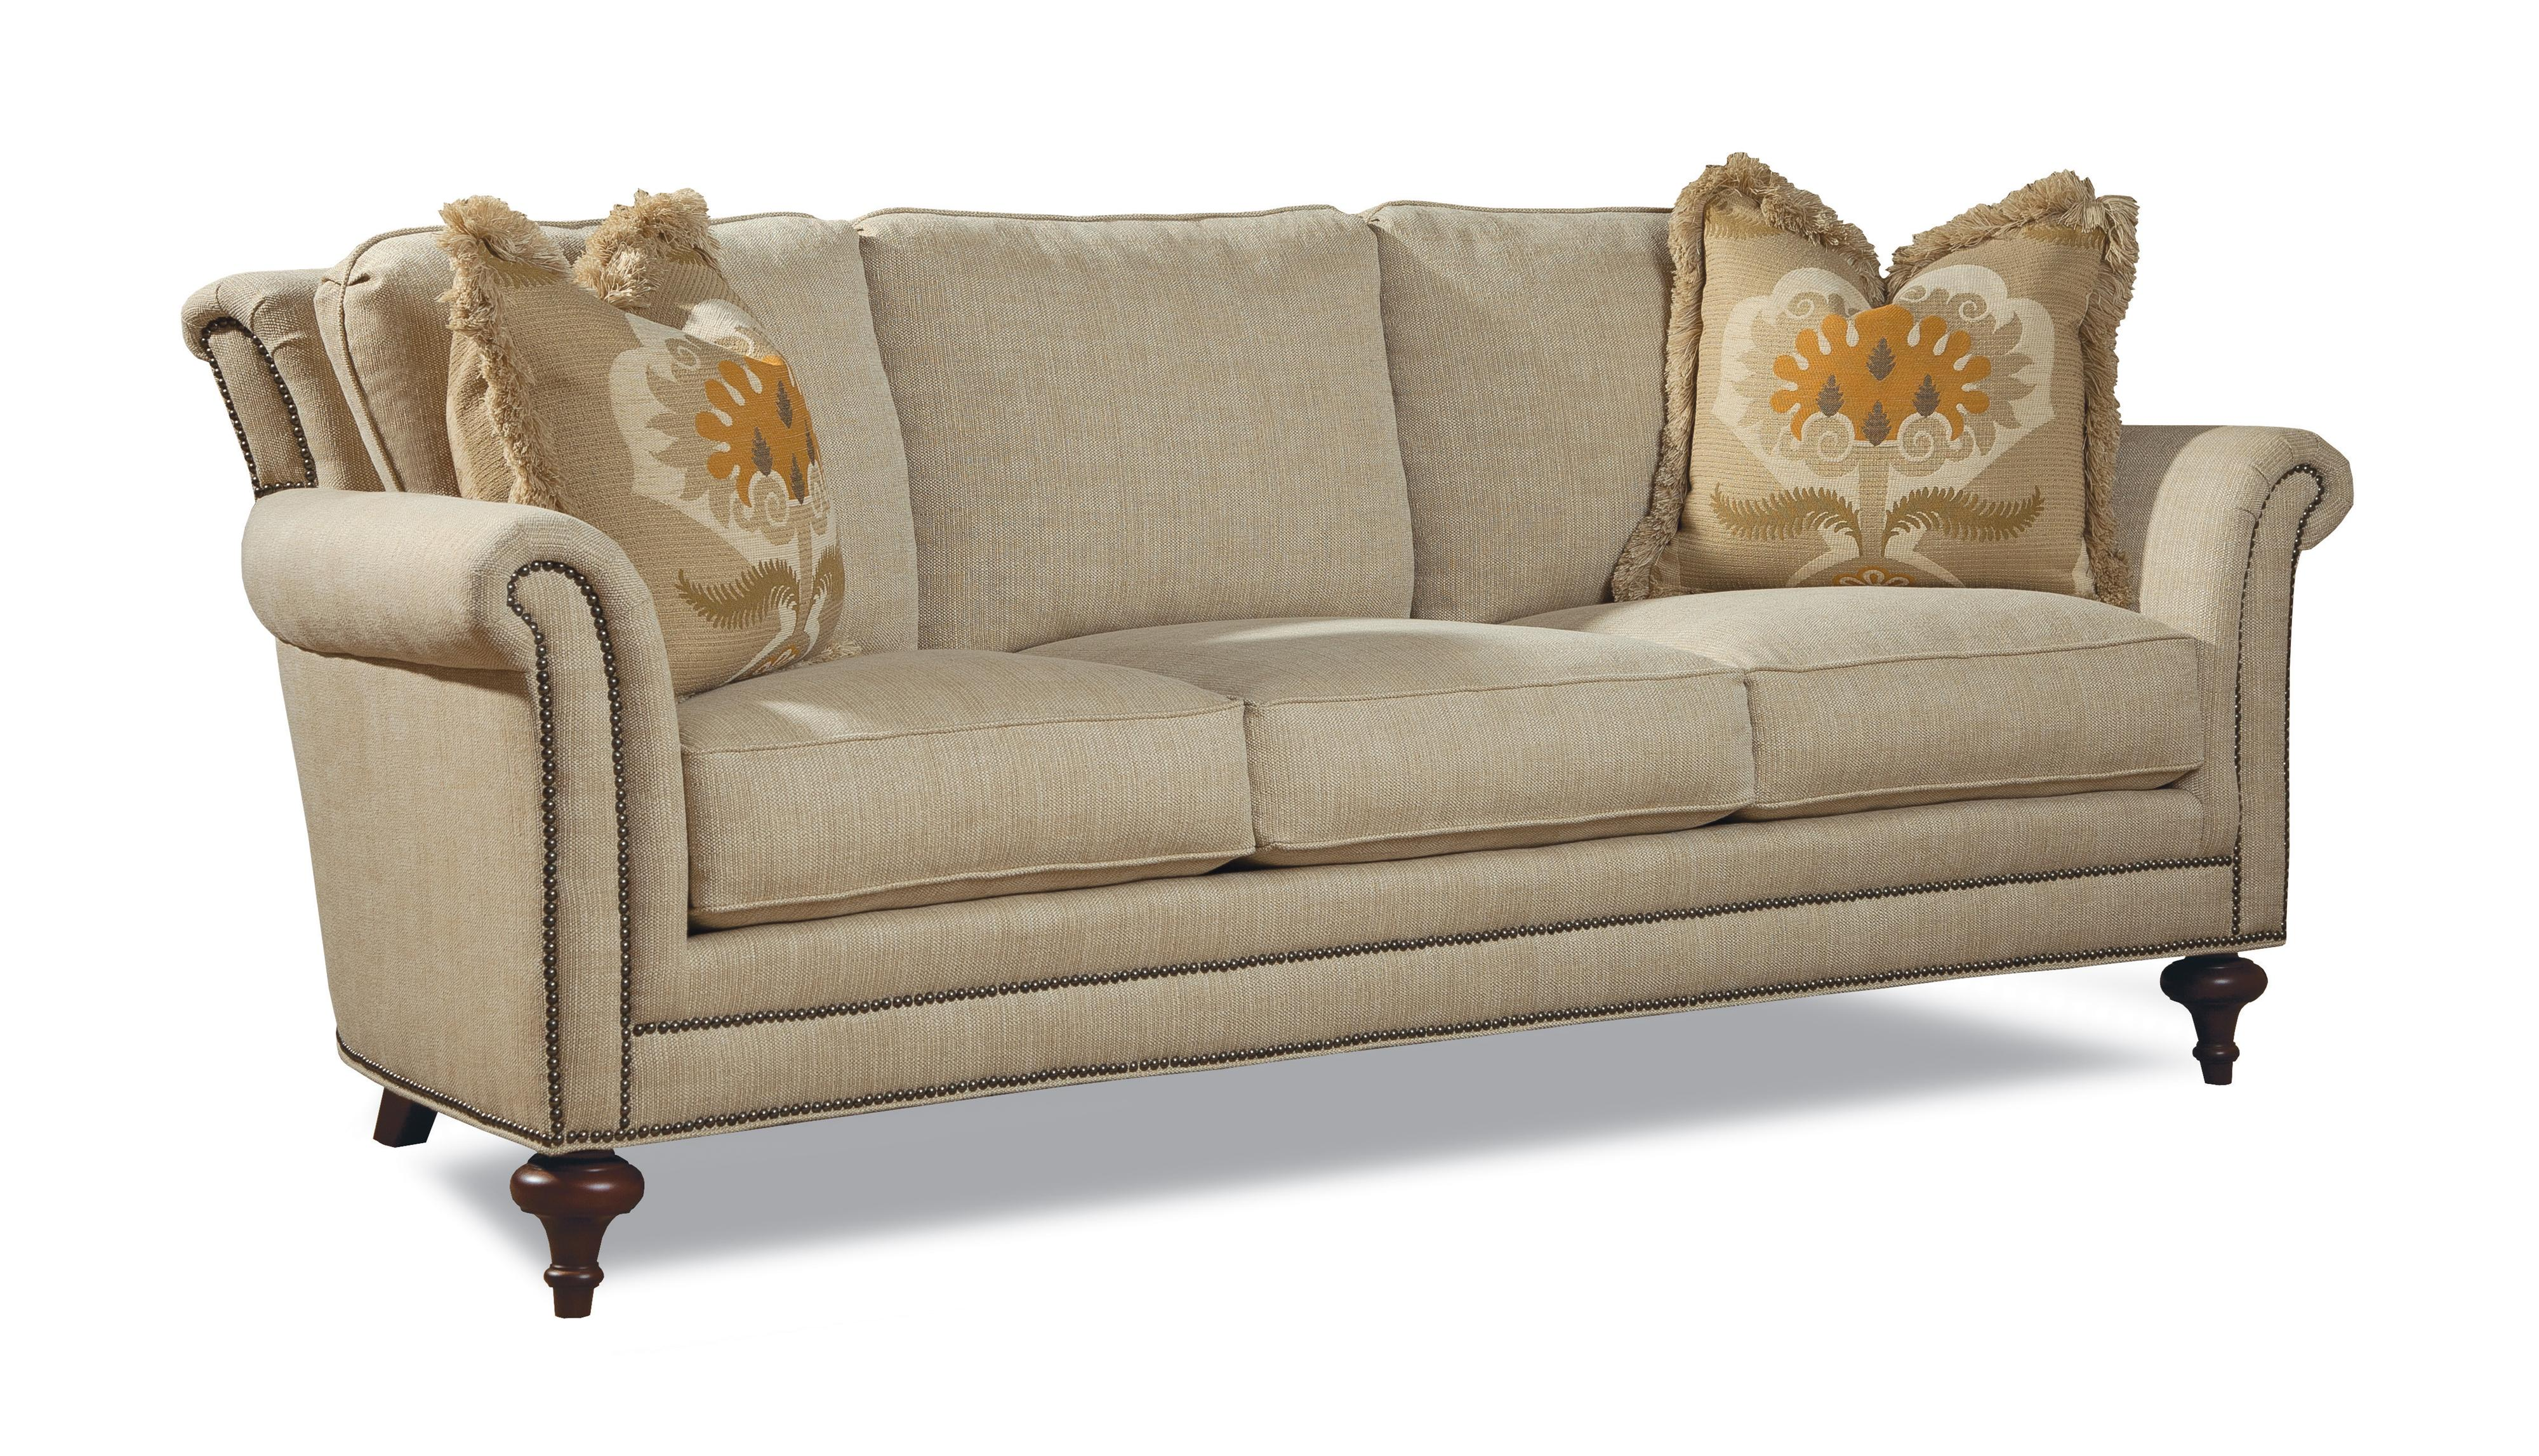 Huntington house 7162 traditional sofa w turned legs for Traditional sofas with legs